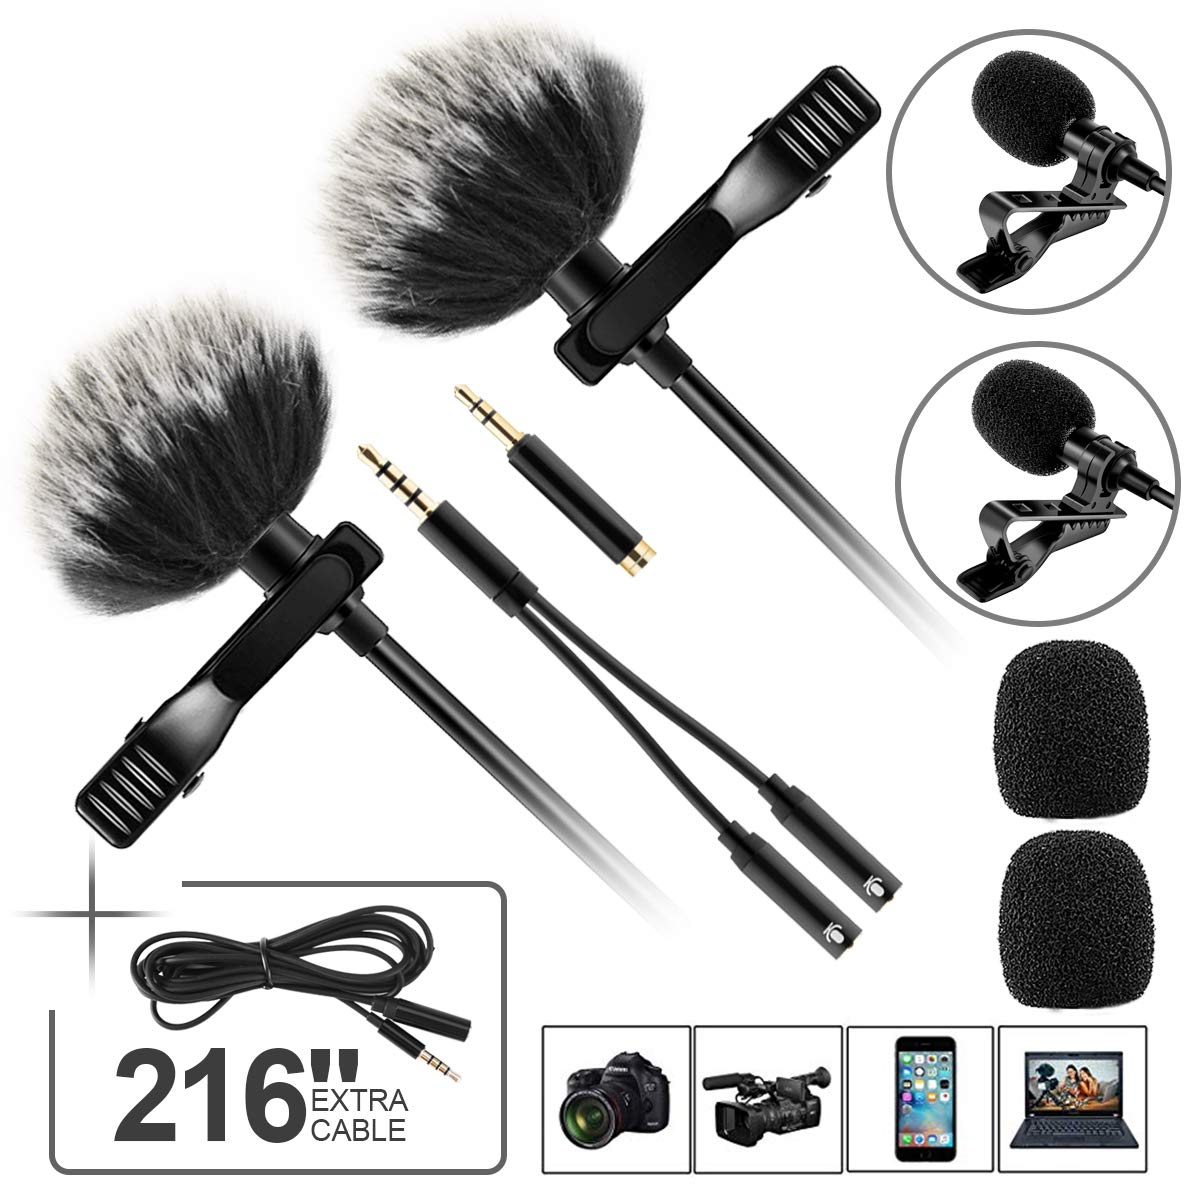 Double lavalier Microphone with 6M Extension Cable, Compatible with Mobile Phone Camera Computer by BESTFYOU